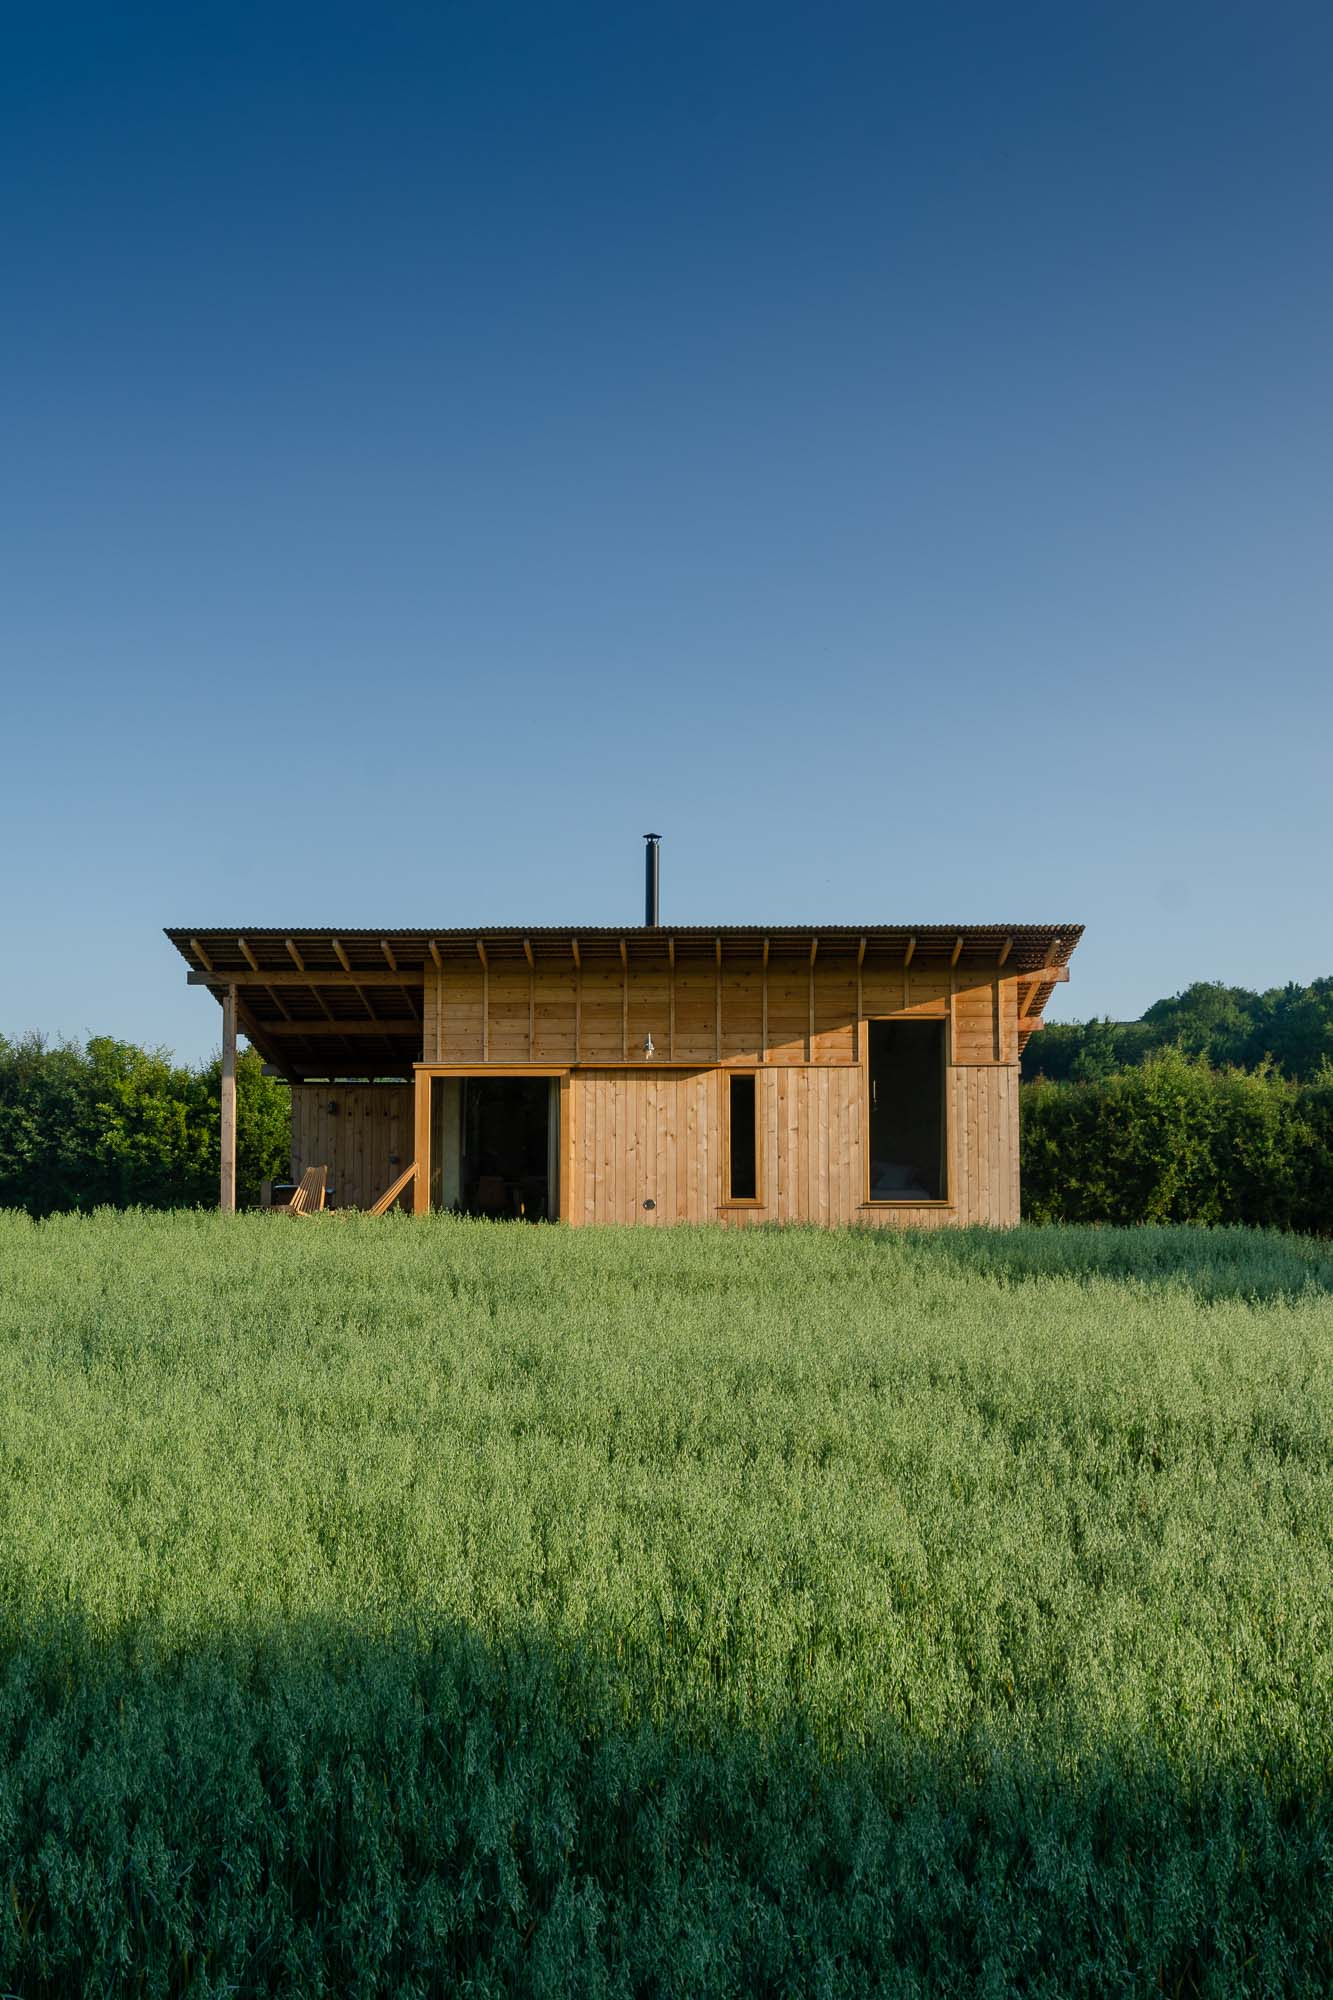 off-grid bespoke cedar cabin with covered veranda, outdoor copper in corn field